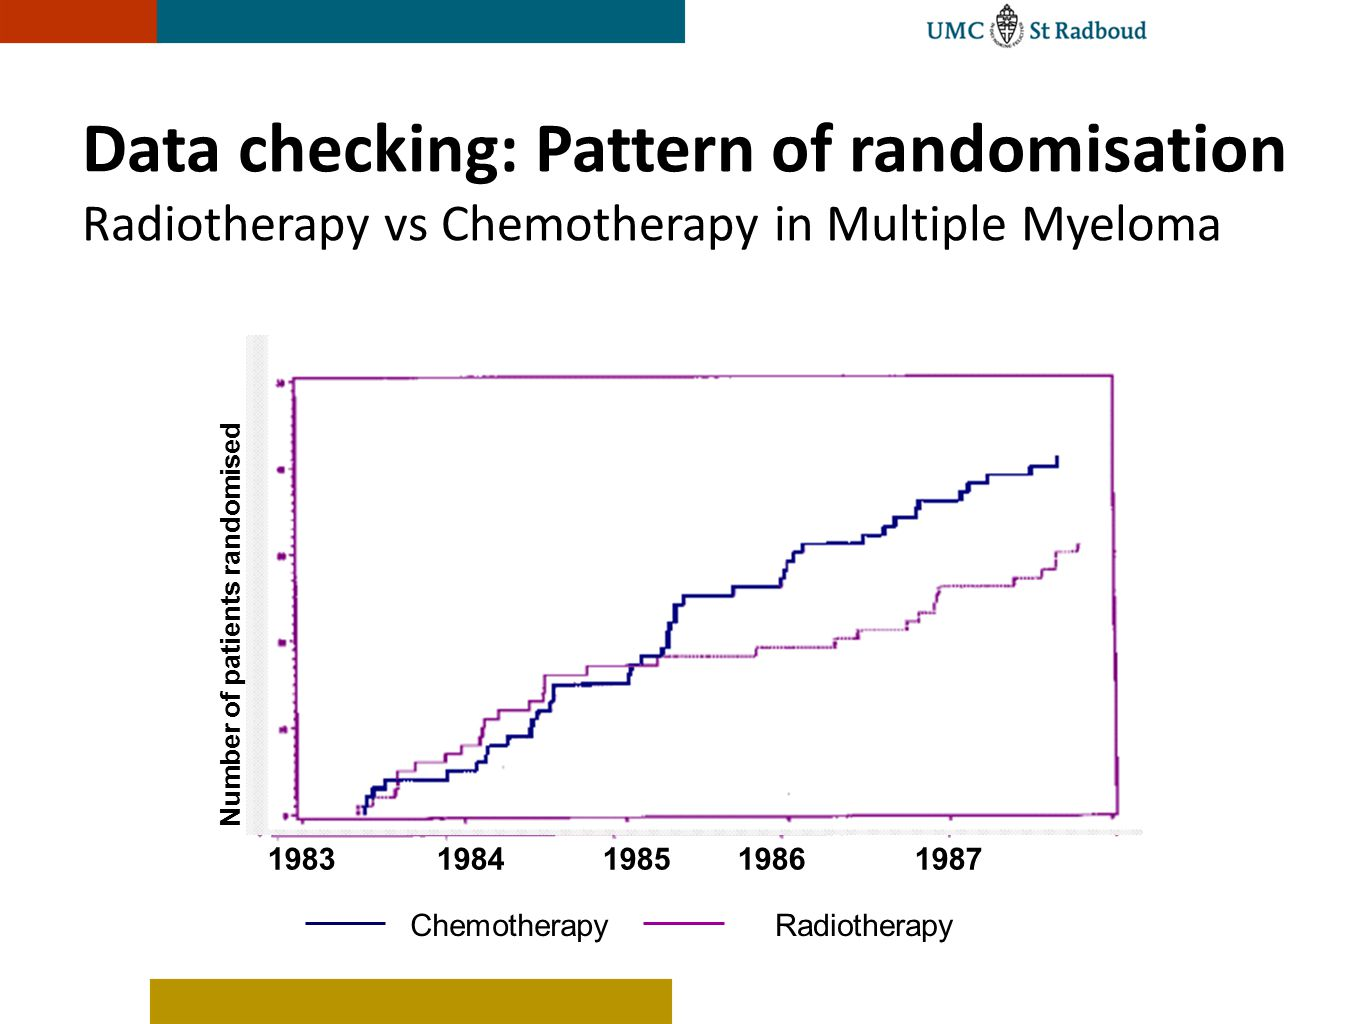 Data checking: Pattern of randomisation Radiotherapy vs Chemotherapy in Multiple Myeloma